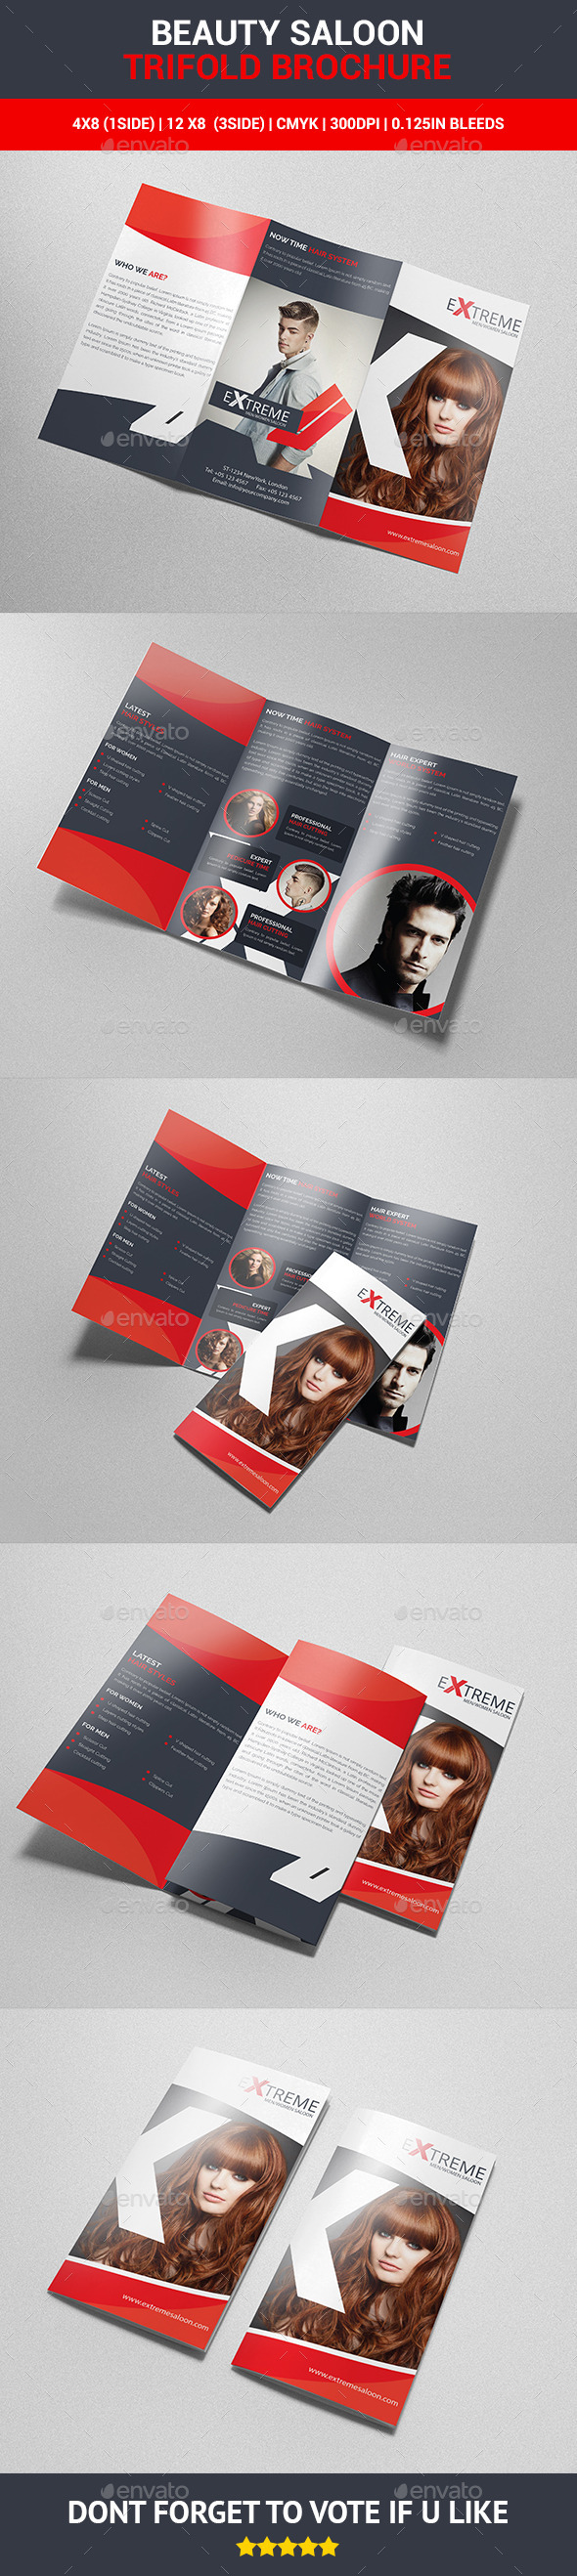 Beauty Saloon Trifold Brochure